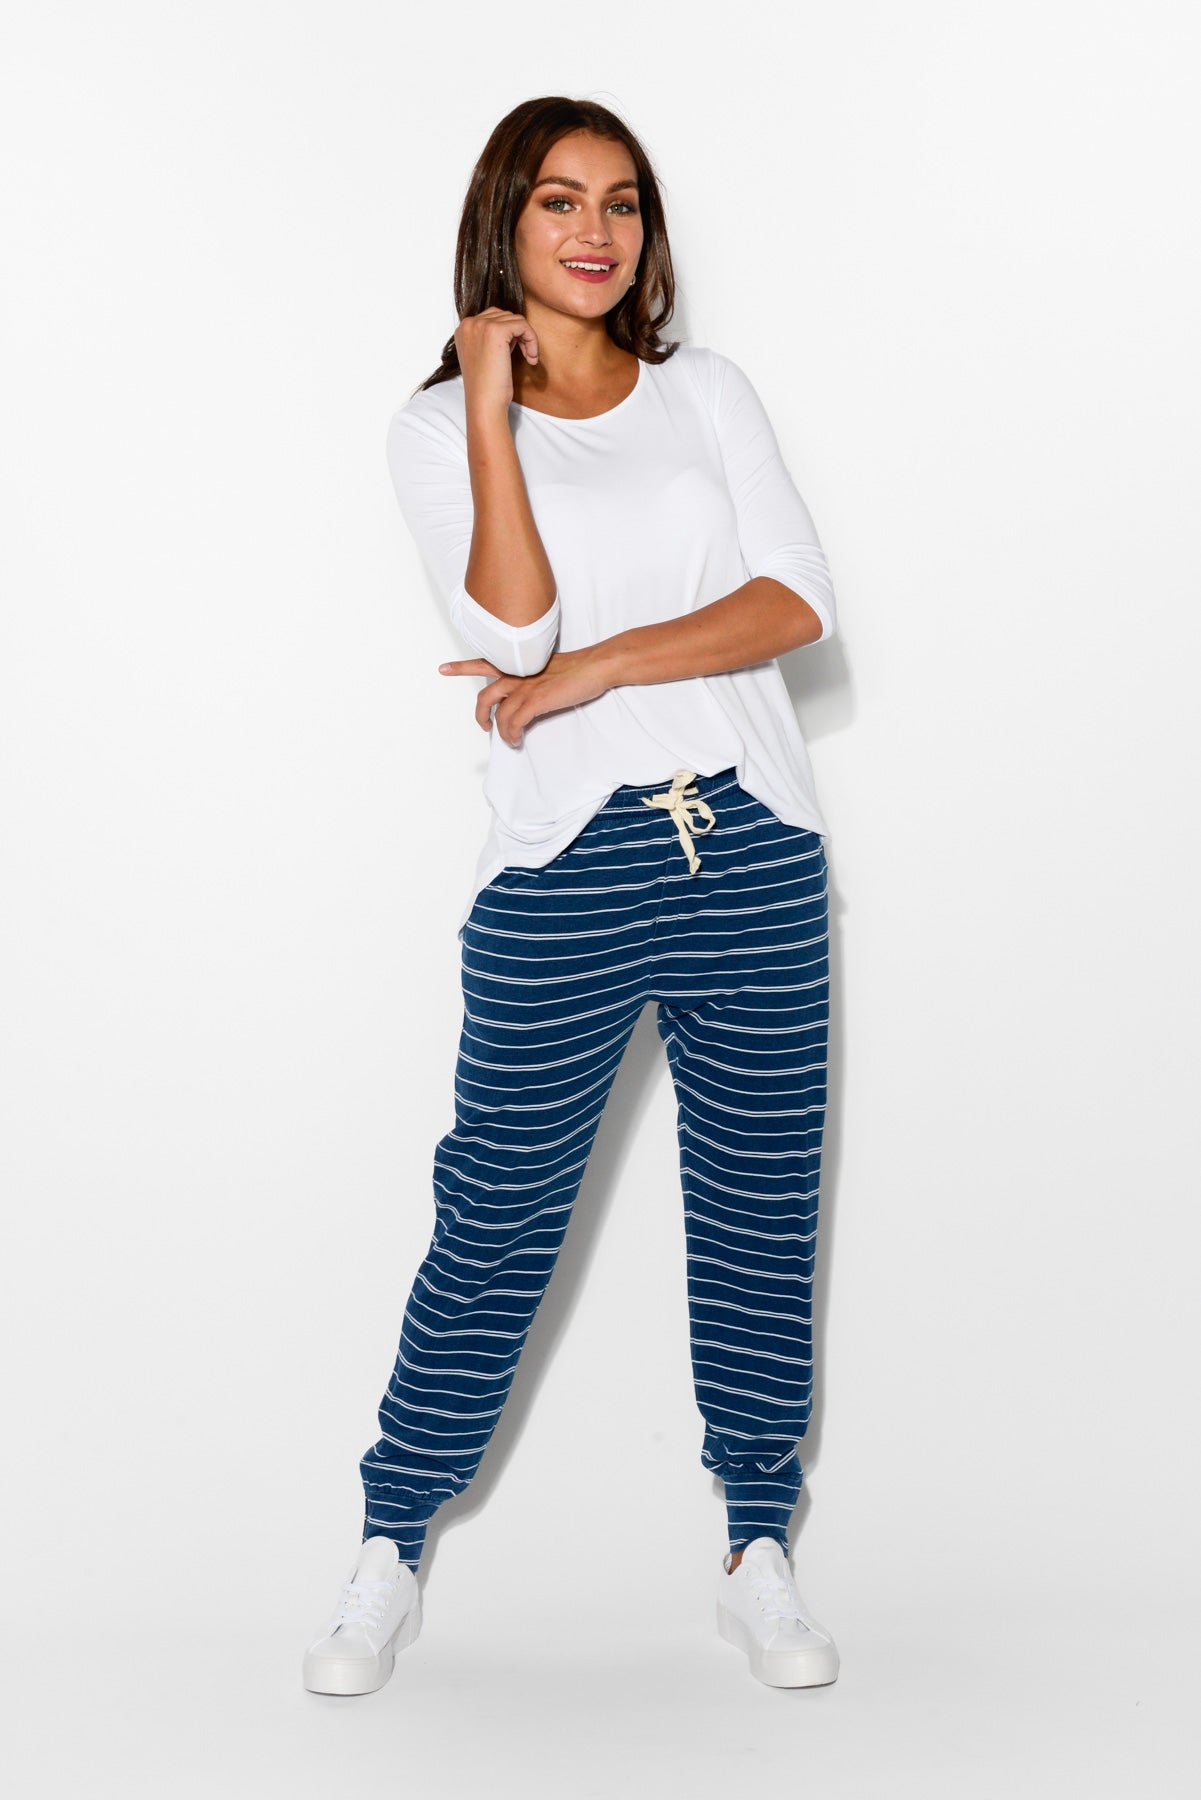 Blue Stripe Relaxed Cotton Pant - Blue Bungalow